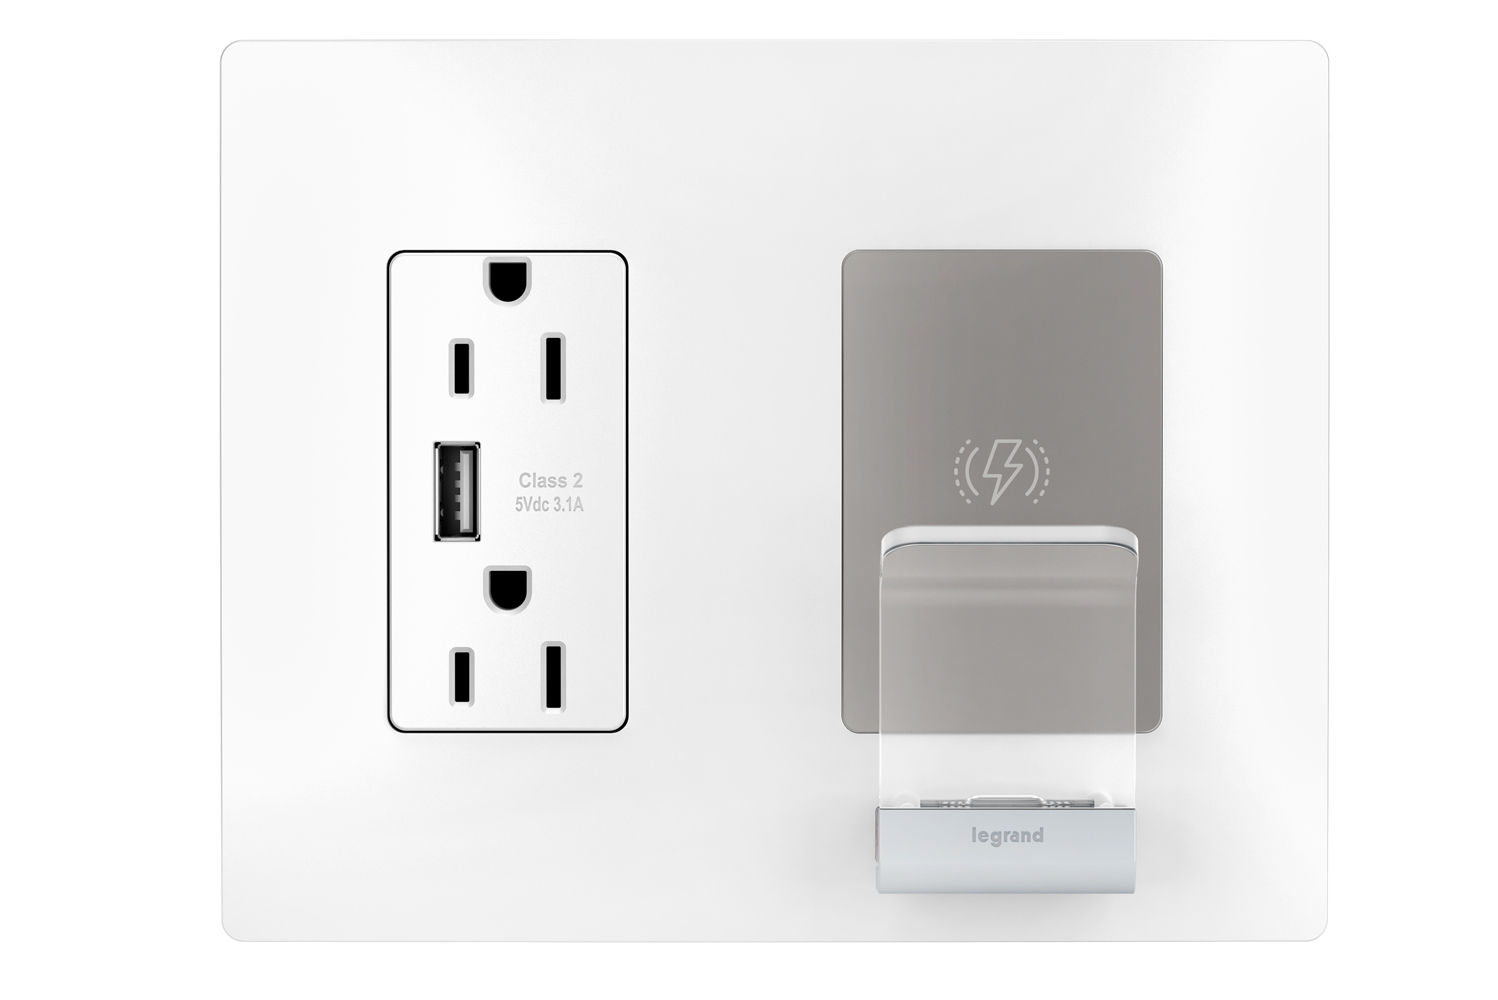 The charger offers a cradle backed by a Qi-certified charging pad to provide simultaneous charging via multiple access points, including two AC receptacles.